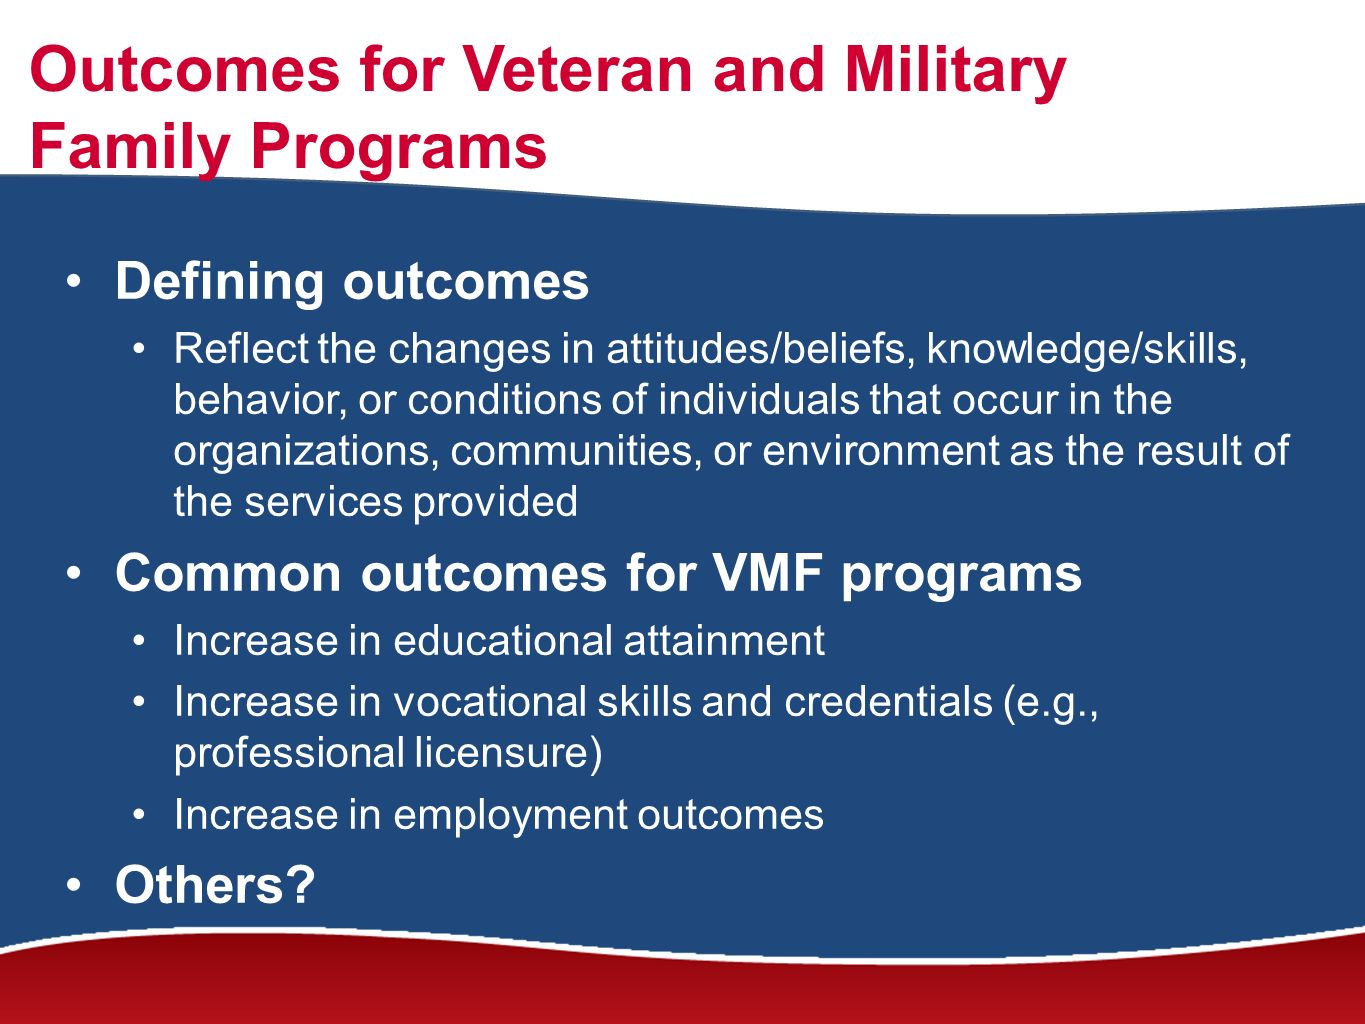 Outcomes for Veteran and Military Family Programs Defining outcomes Reflect the changes in attitudes/beliefs, knowledge/skills, behavior, or conditions of individuals that occur in the organizations, communities, or environment as the result of the services provided Common outcomes for VMF programs Increase in educational attainment Increase in vocational skills and credentials (e.g., professional licensure) Increase in employment outcomes Others